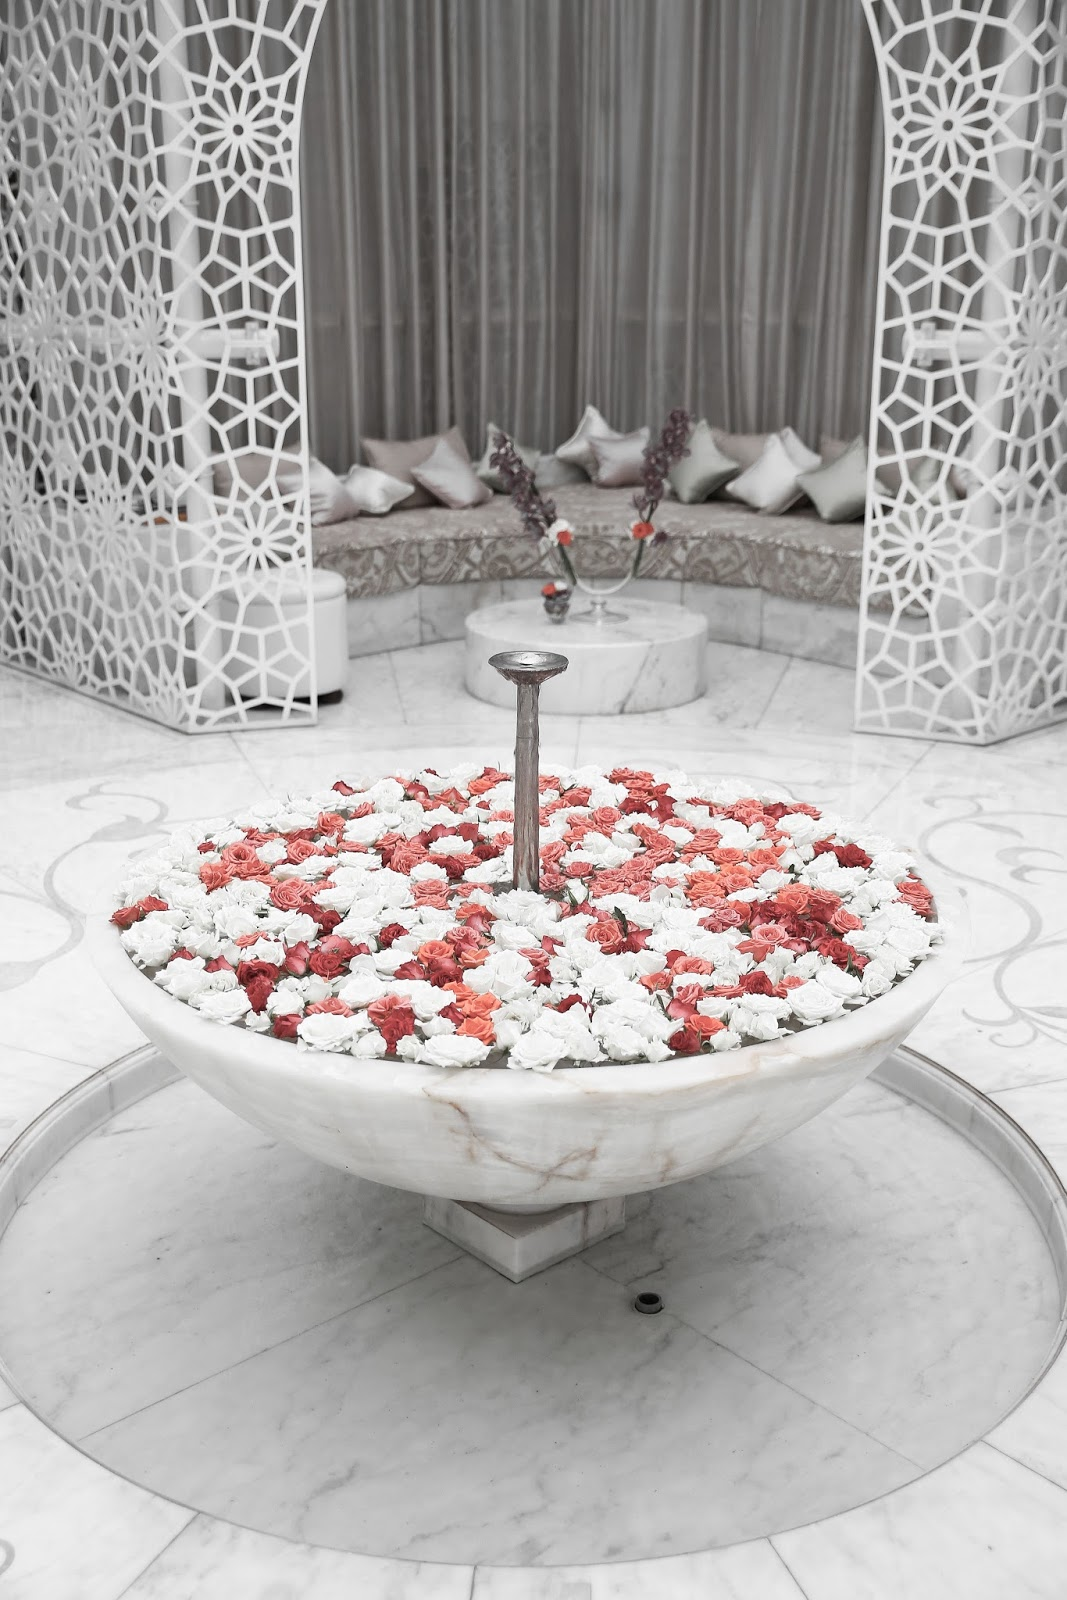 Royal Mansour spa, Royal Mansour Marrakech, luxury hotel, mowoblog